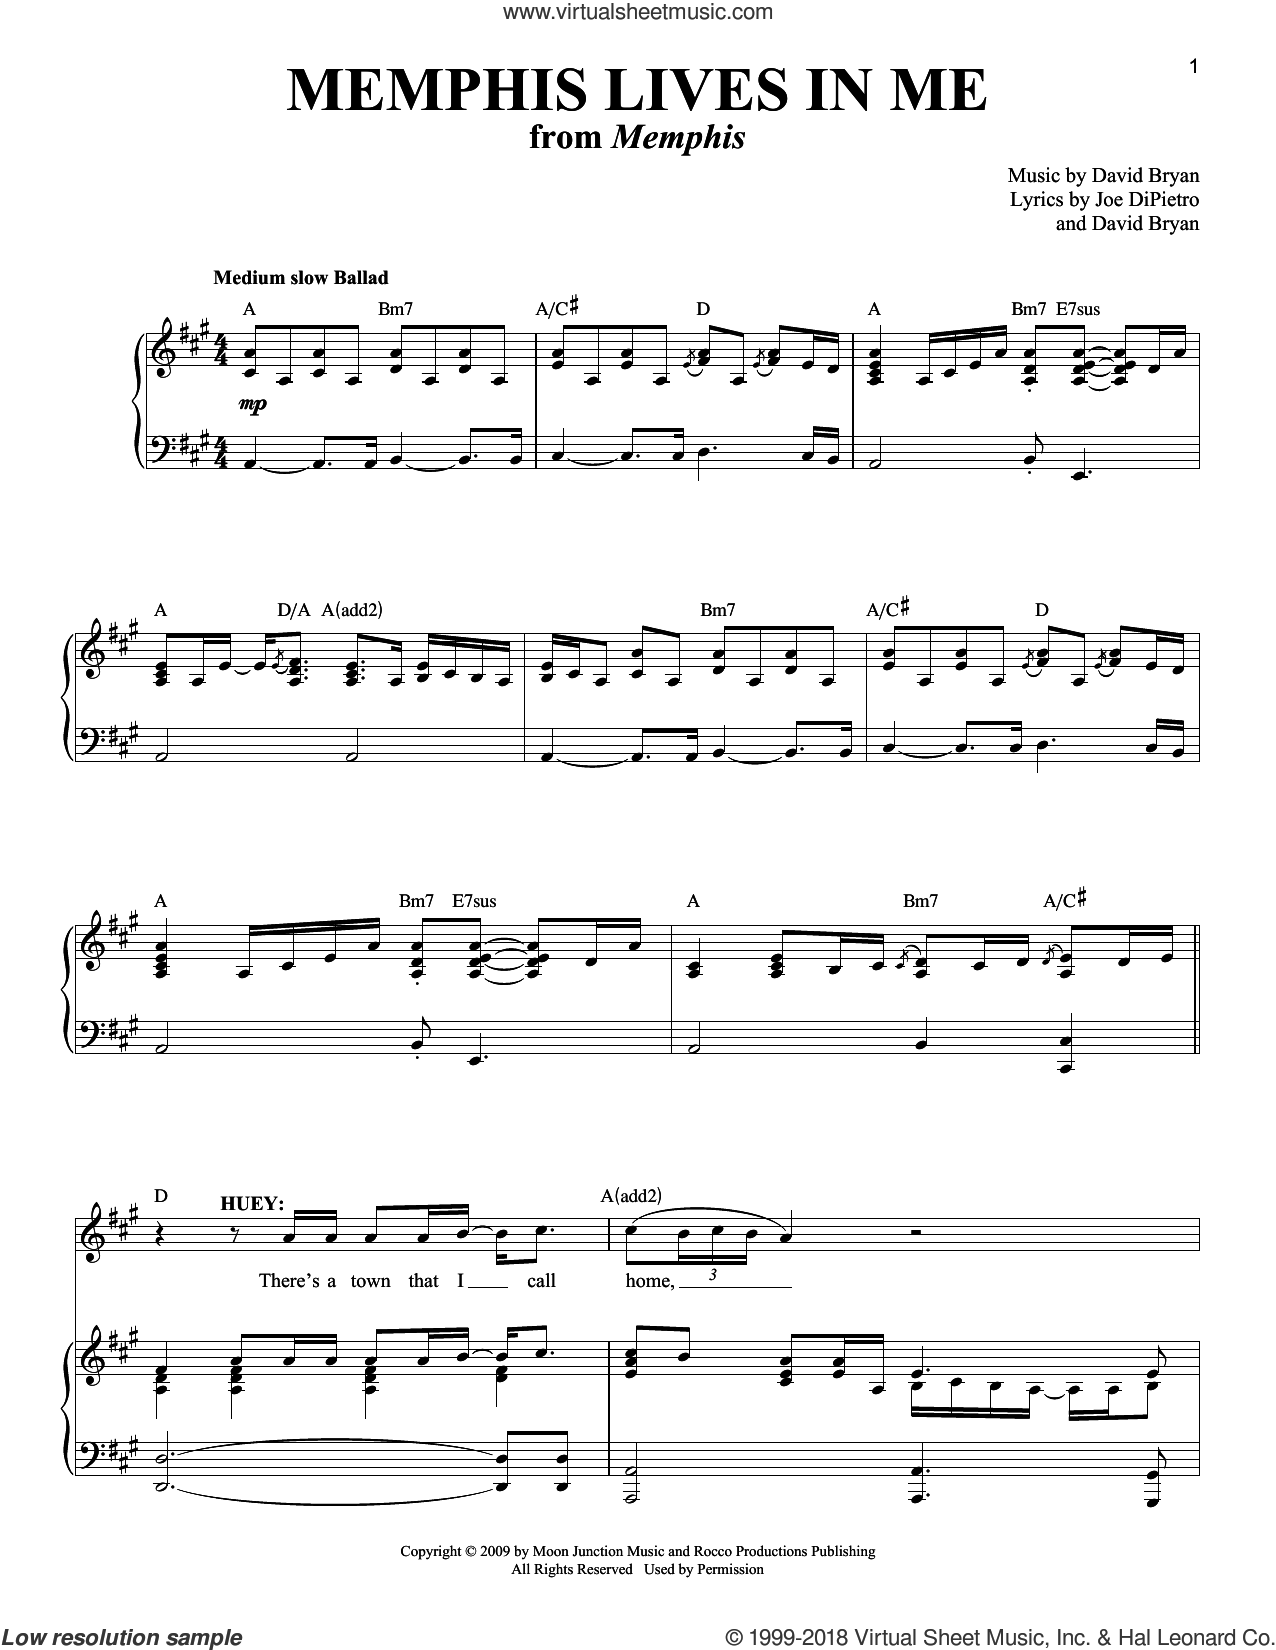 Memphis Lives In Me sheet music for voice and piano by Joe DiPietro and David Bryan. Score Image Preview.